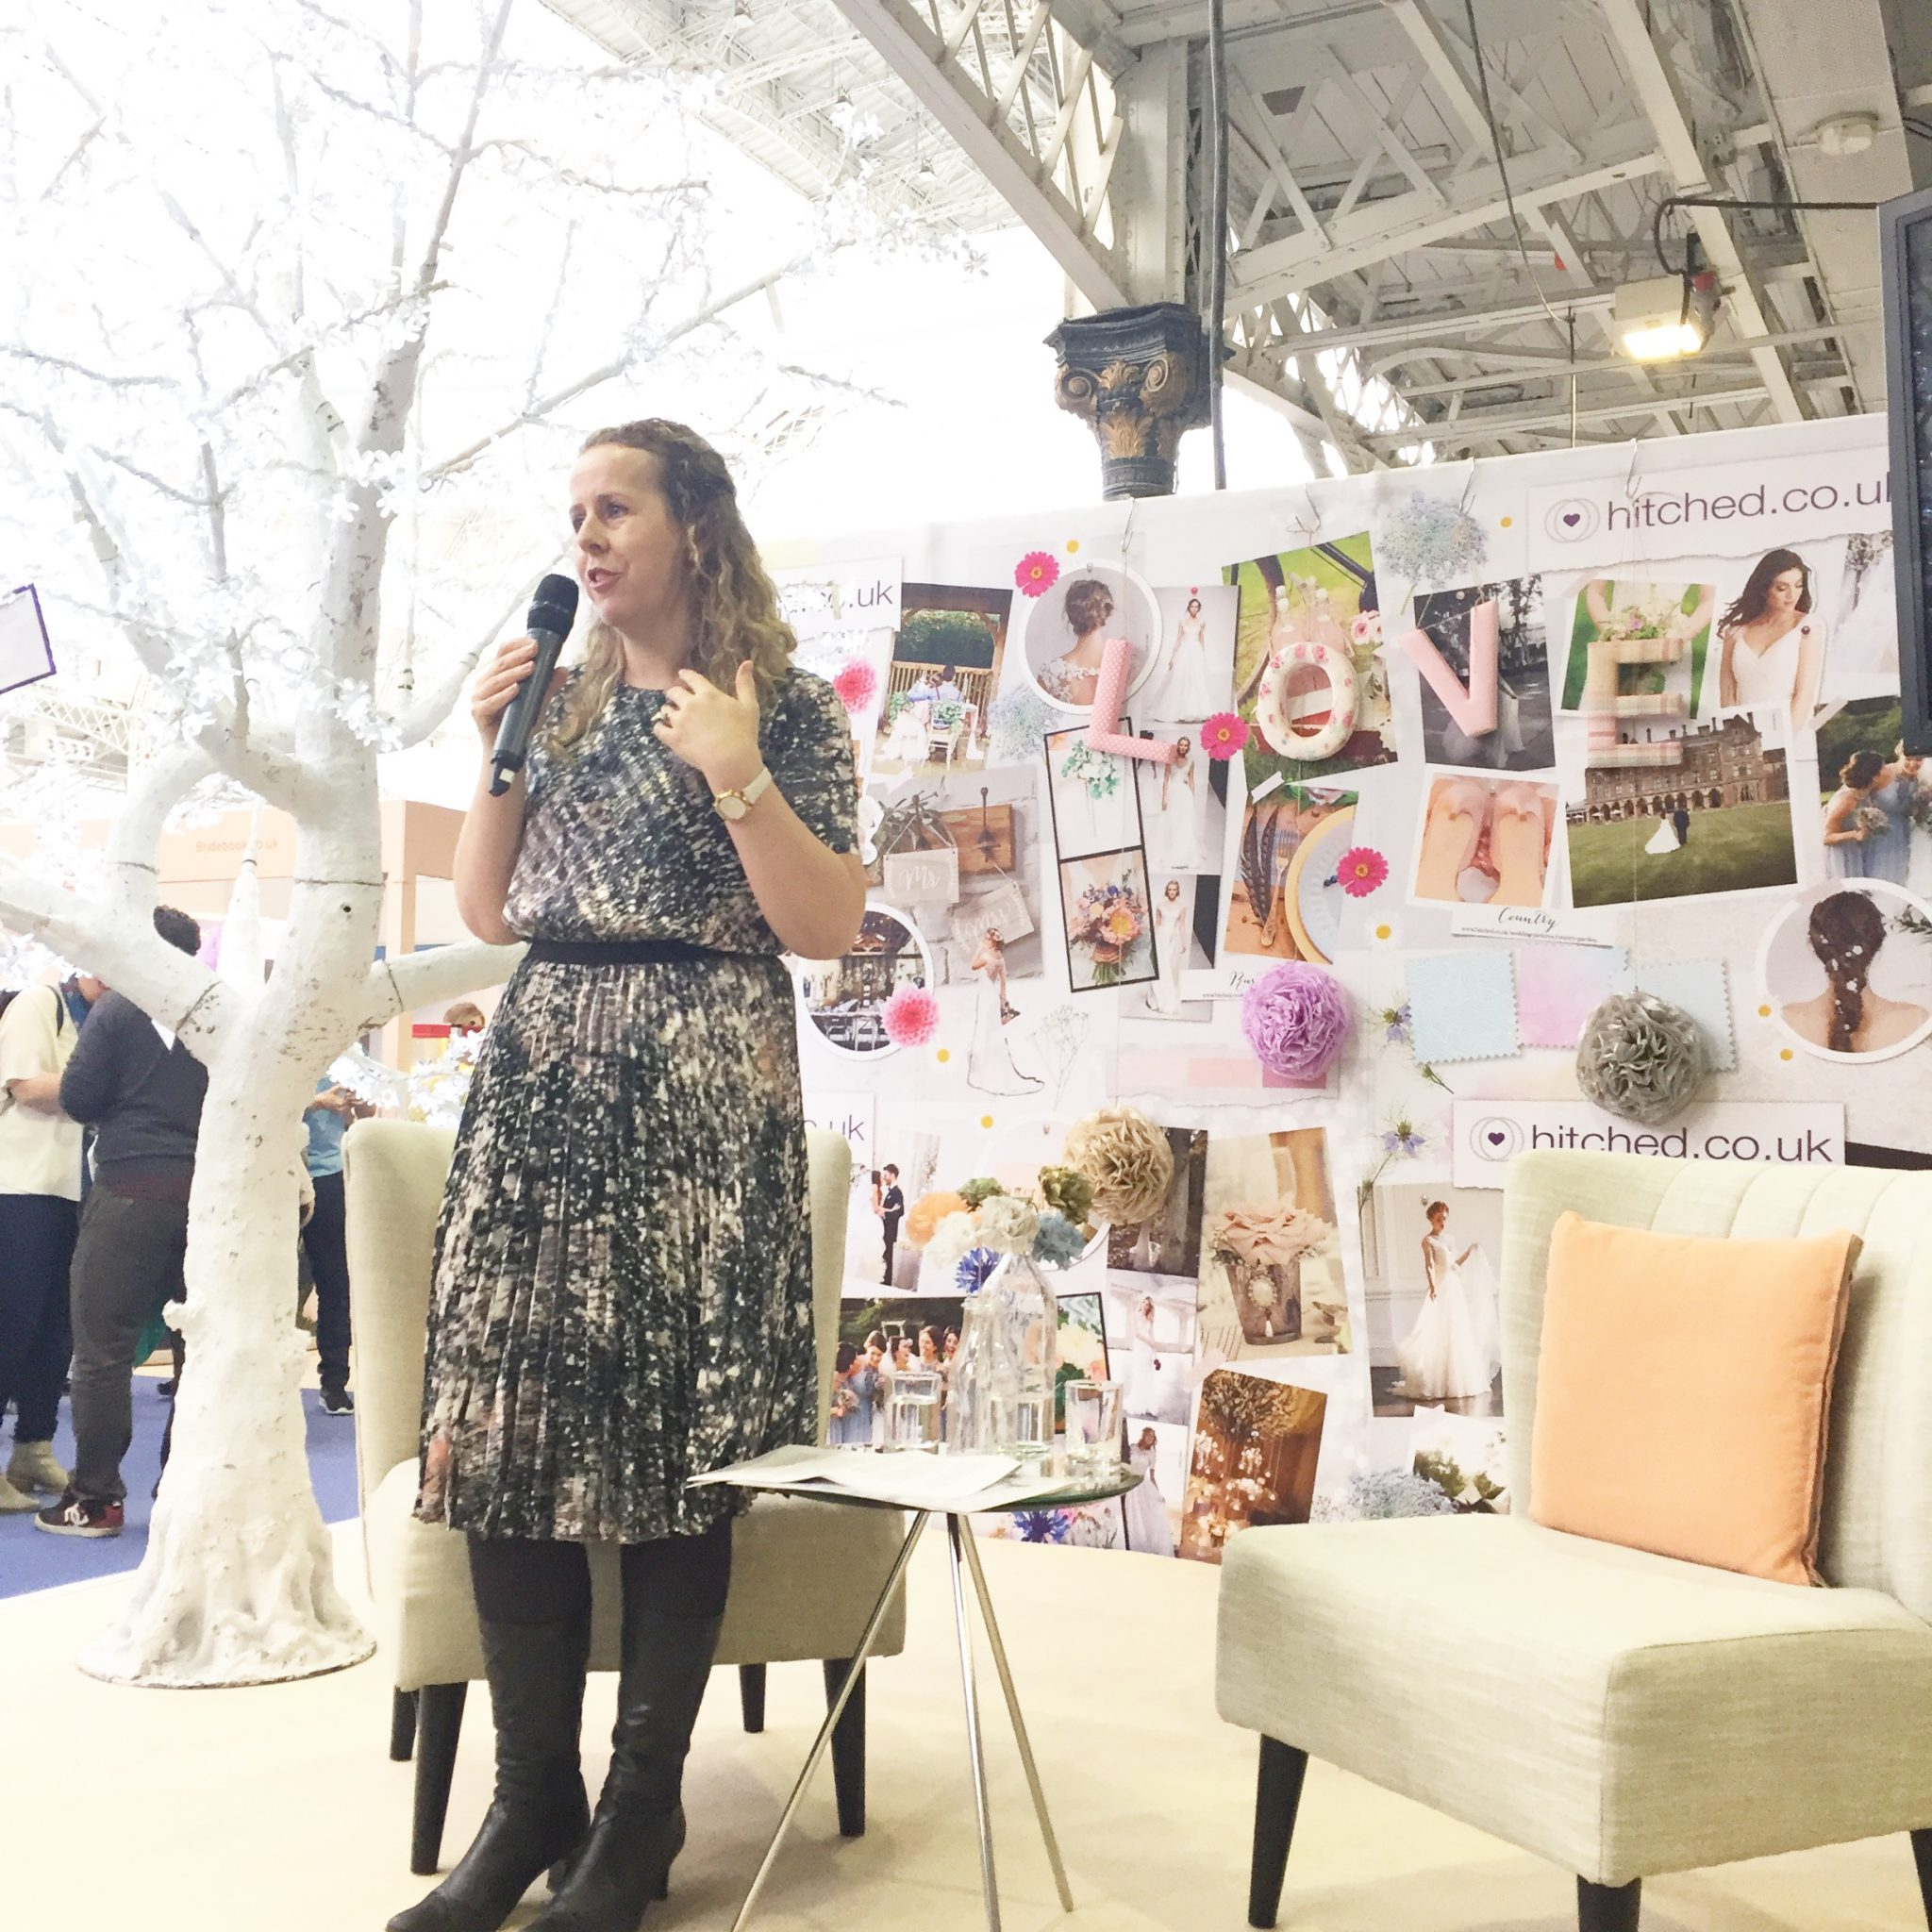 Bernadette presented at the national wedding show